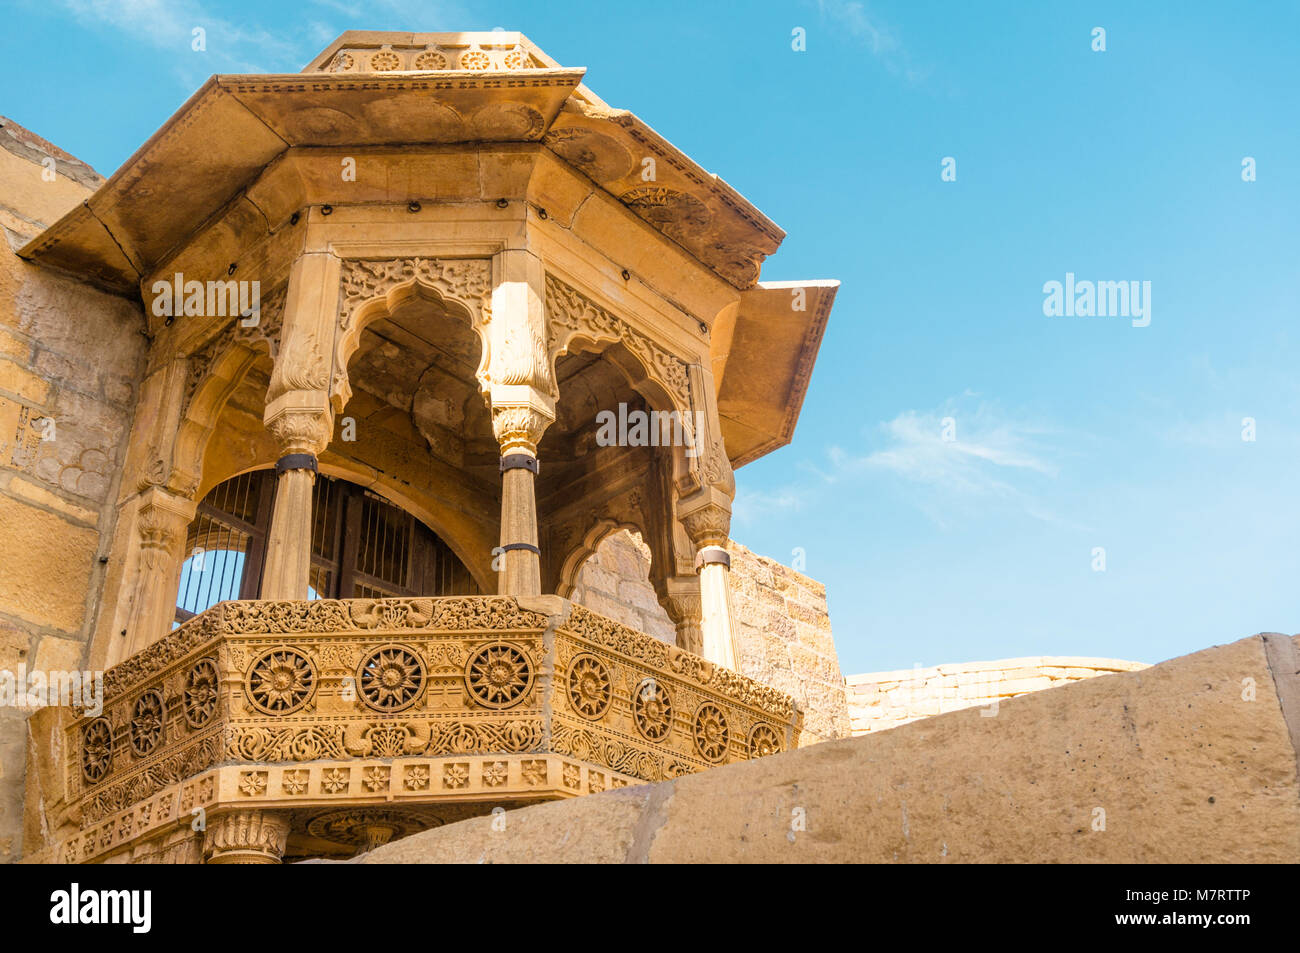 Close up of the arches of a rajasthani palace shot against a clear blue sky. This is Jaisalmer's famous sonar - Stock Image